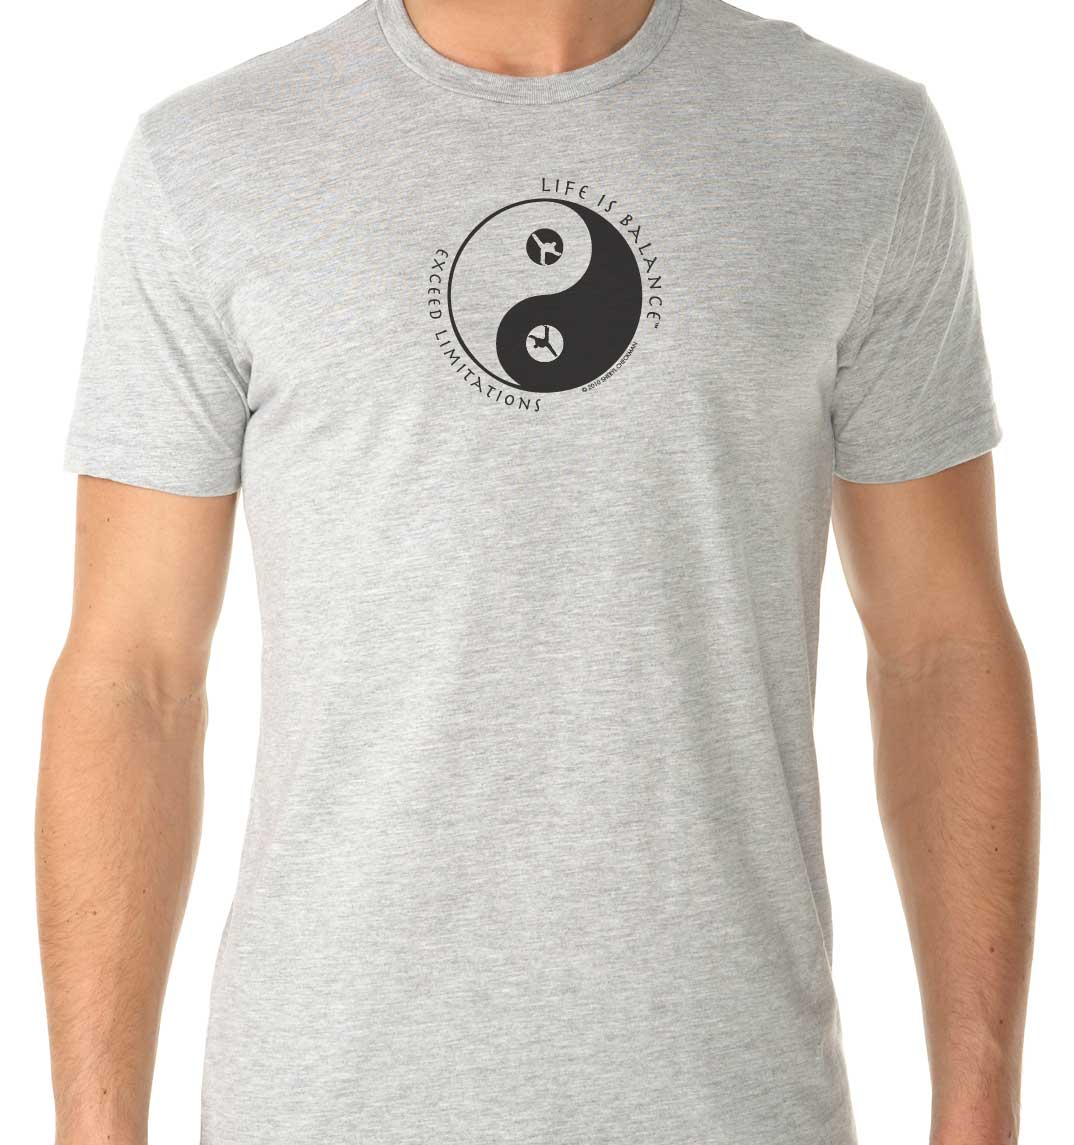 Men's short sleeve martial arts t-shirt (heather gray/black)